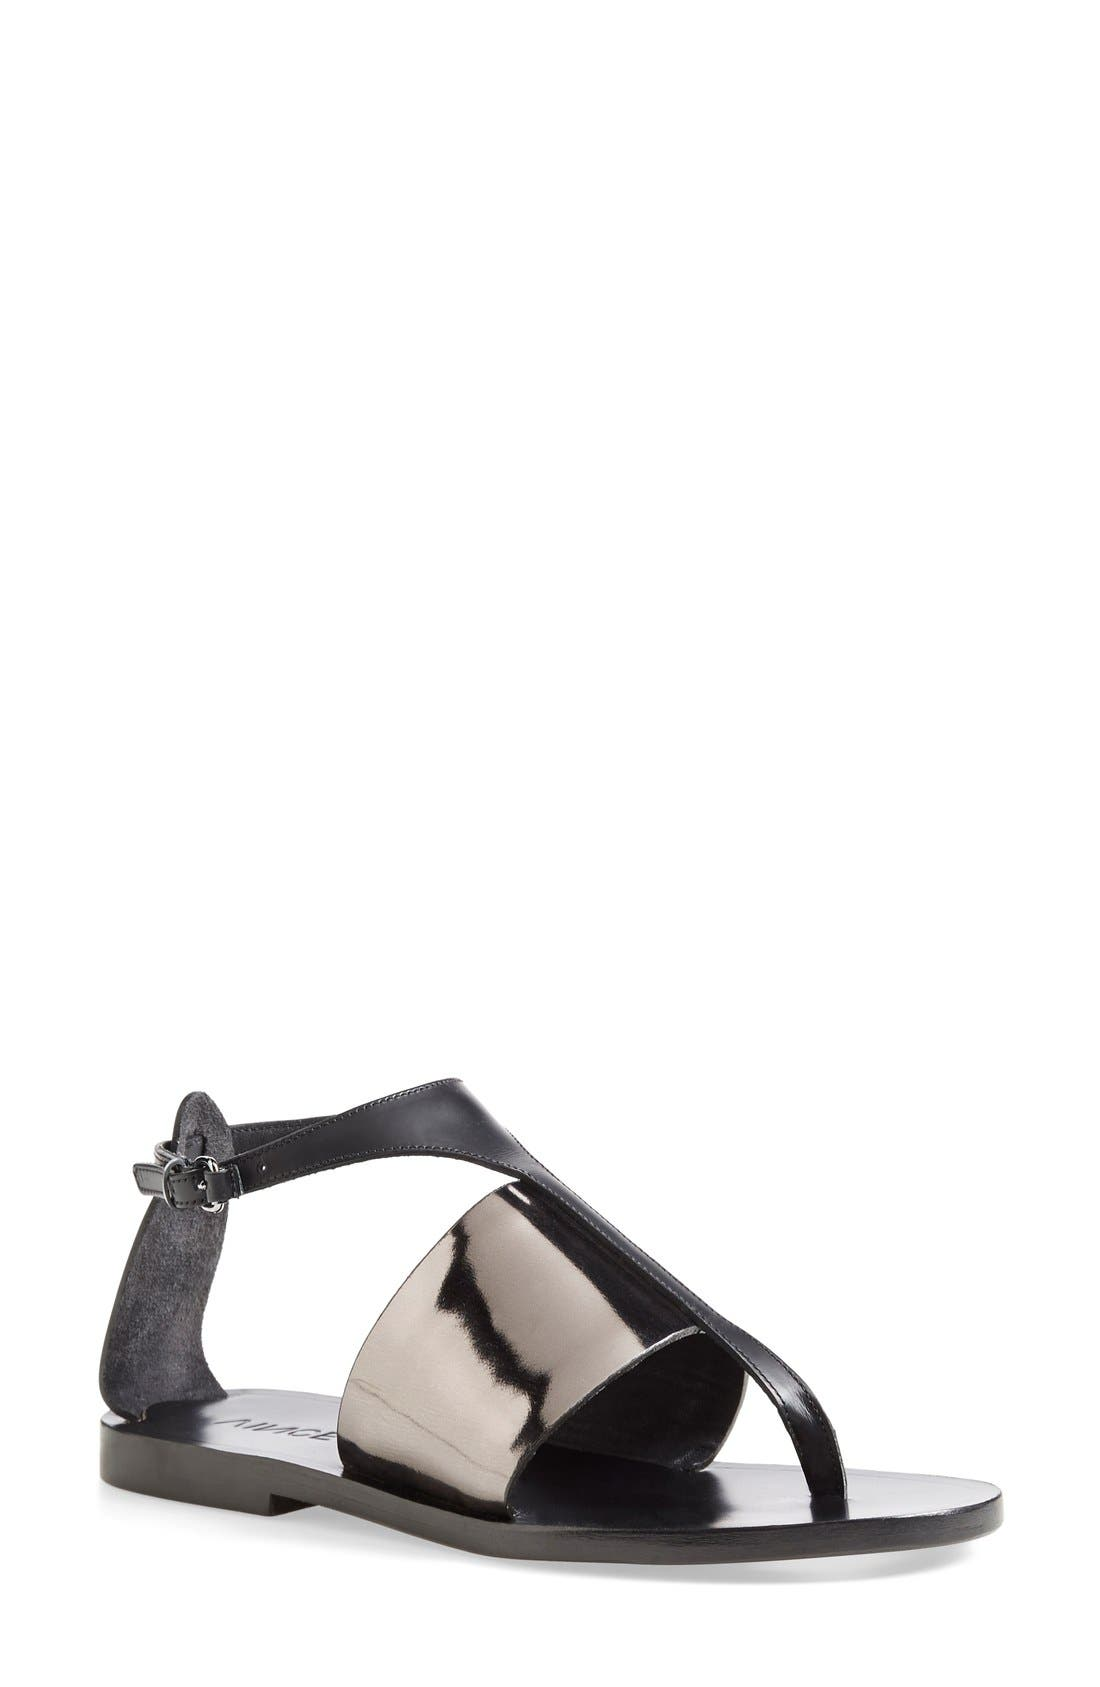 Alternate Image 1 Selected - Vince 'Thea' Ankle Strap Thong Sandal (Women)